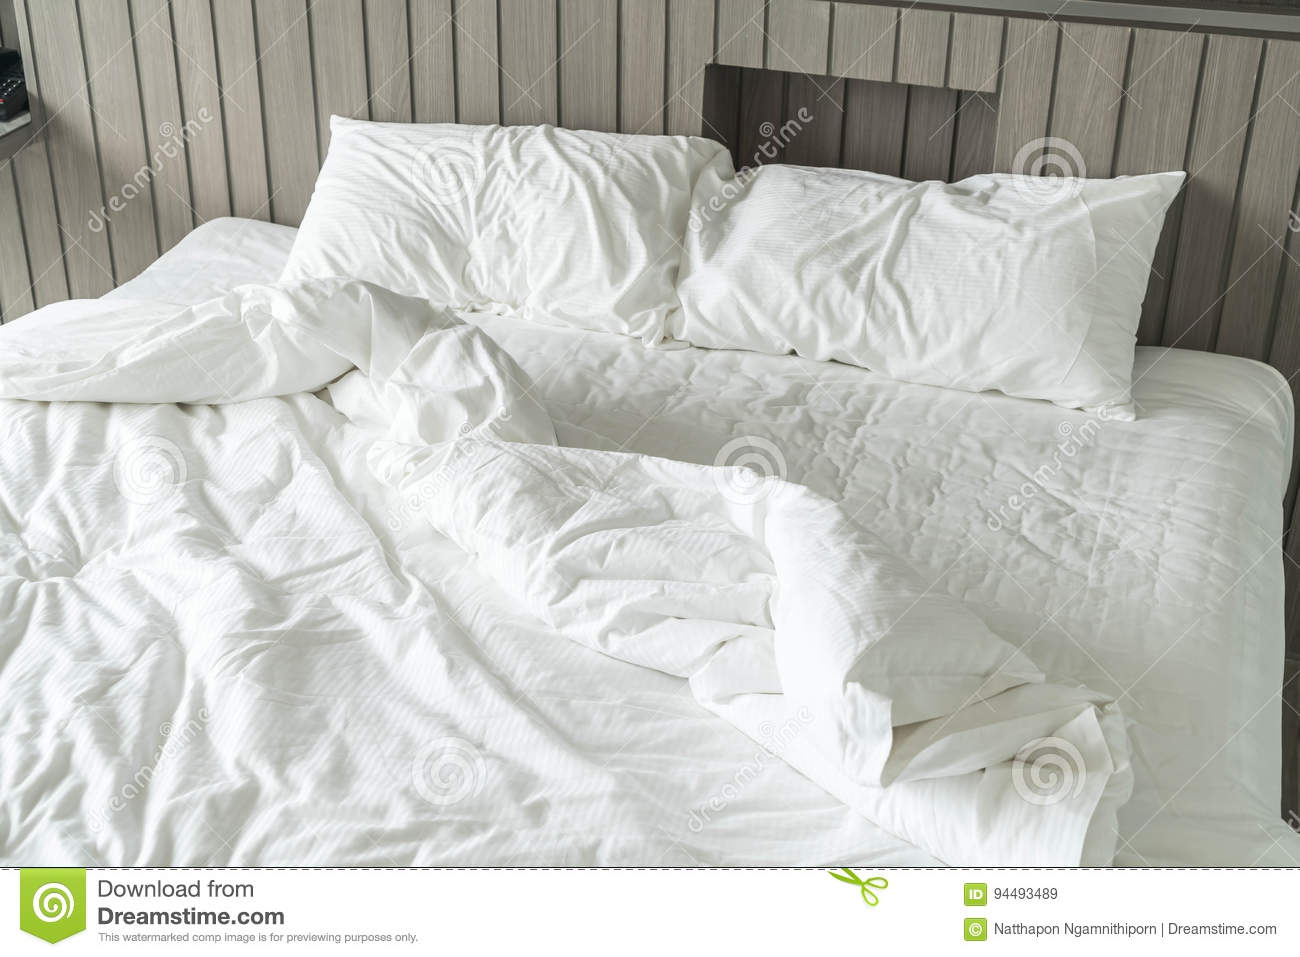 White Decoration Bedroom Rumpled Bed With White Messy Pillow Decoration In Bedroom Stock